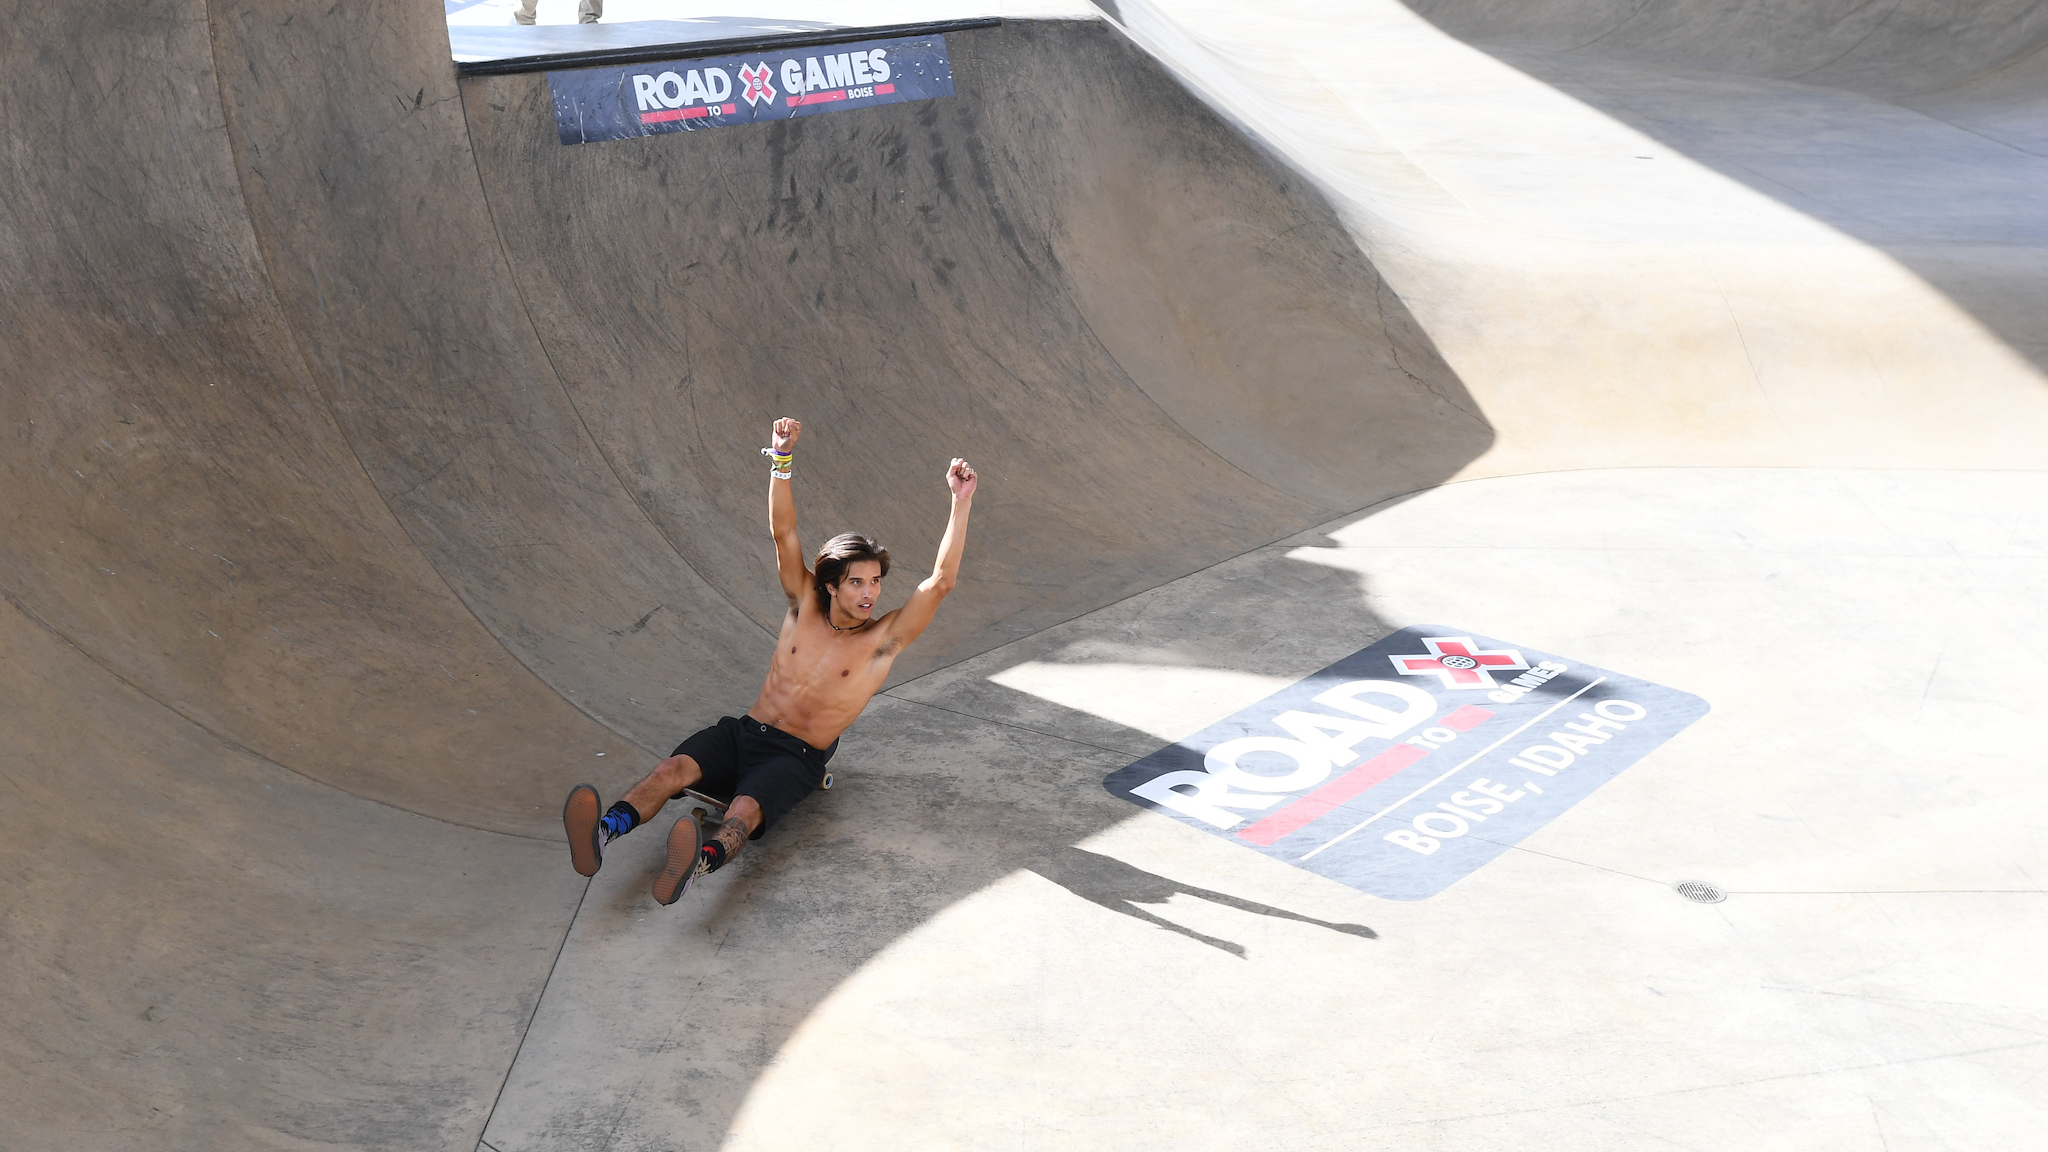 Heimana Reynolds just earned himself another ticket to X Games Minneapolis.